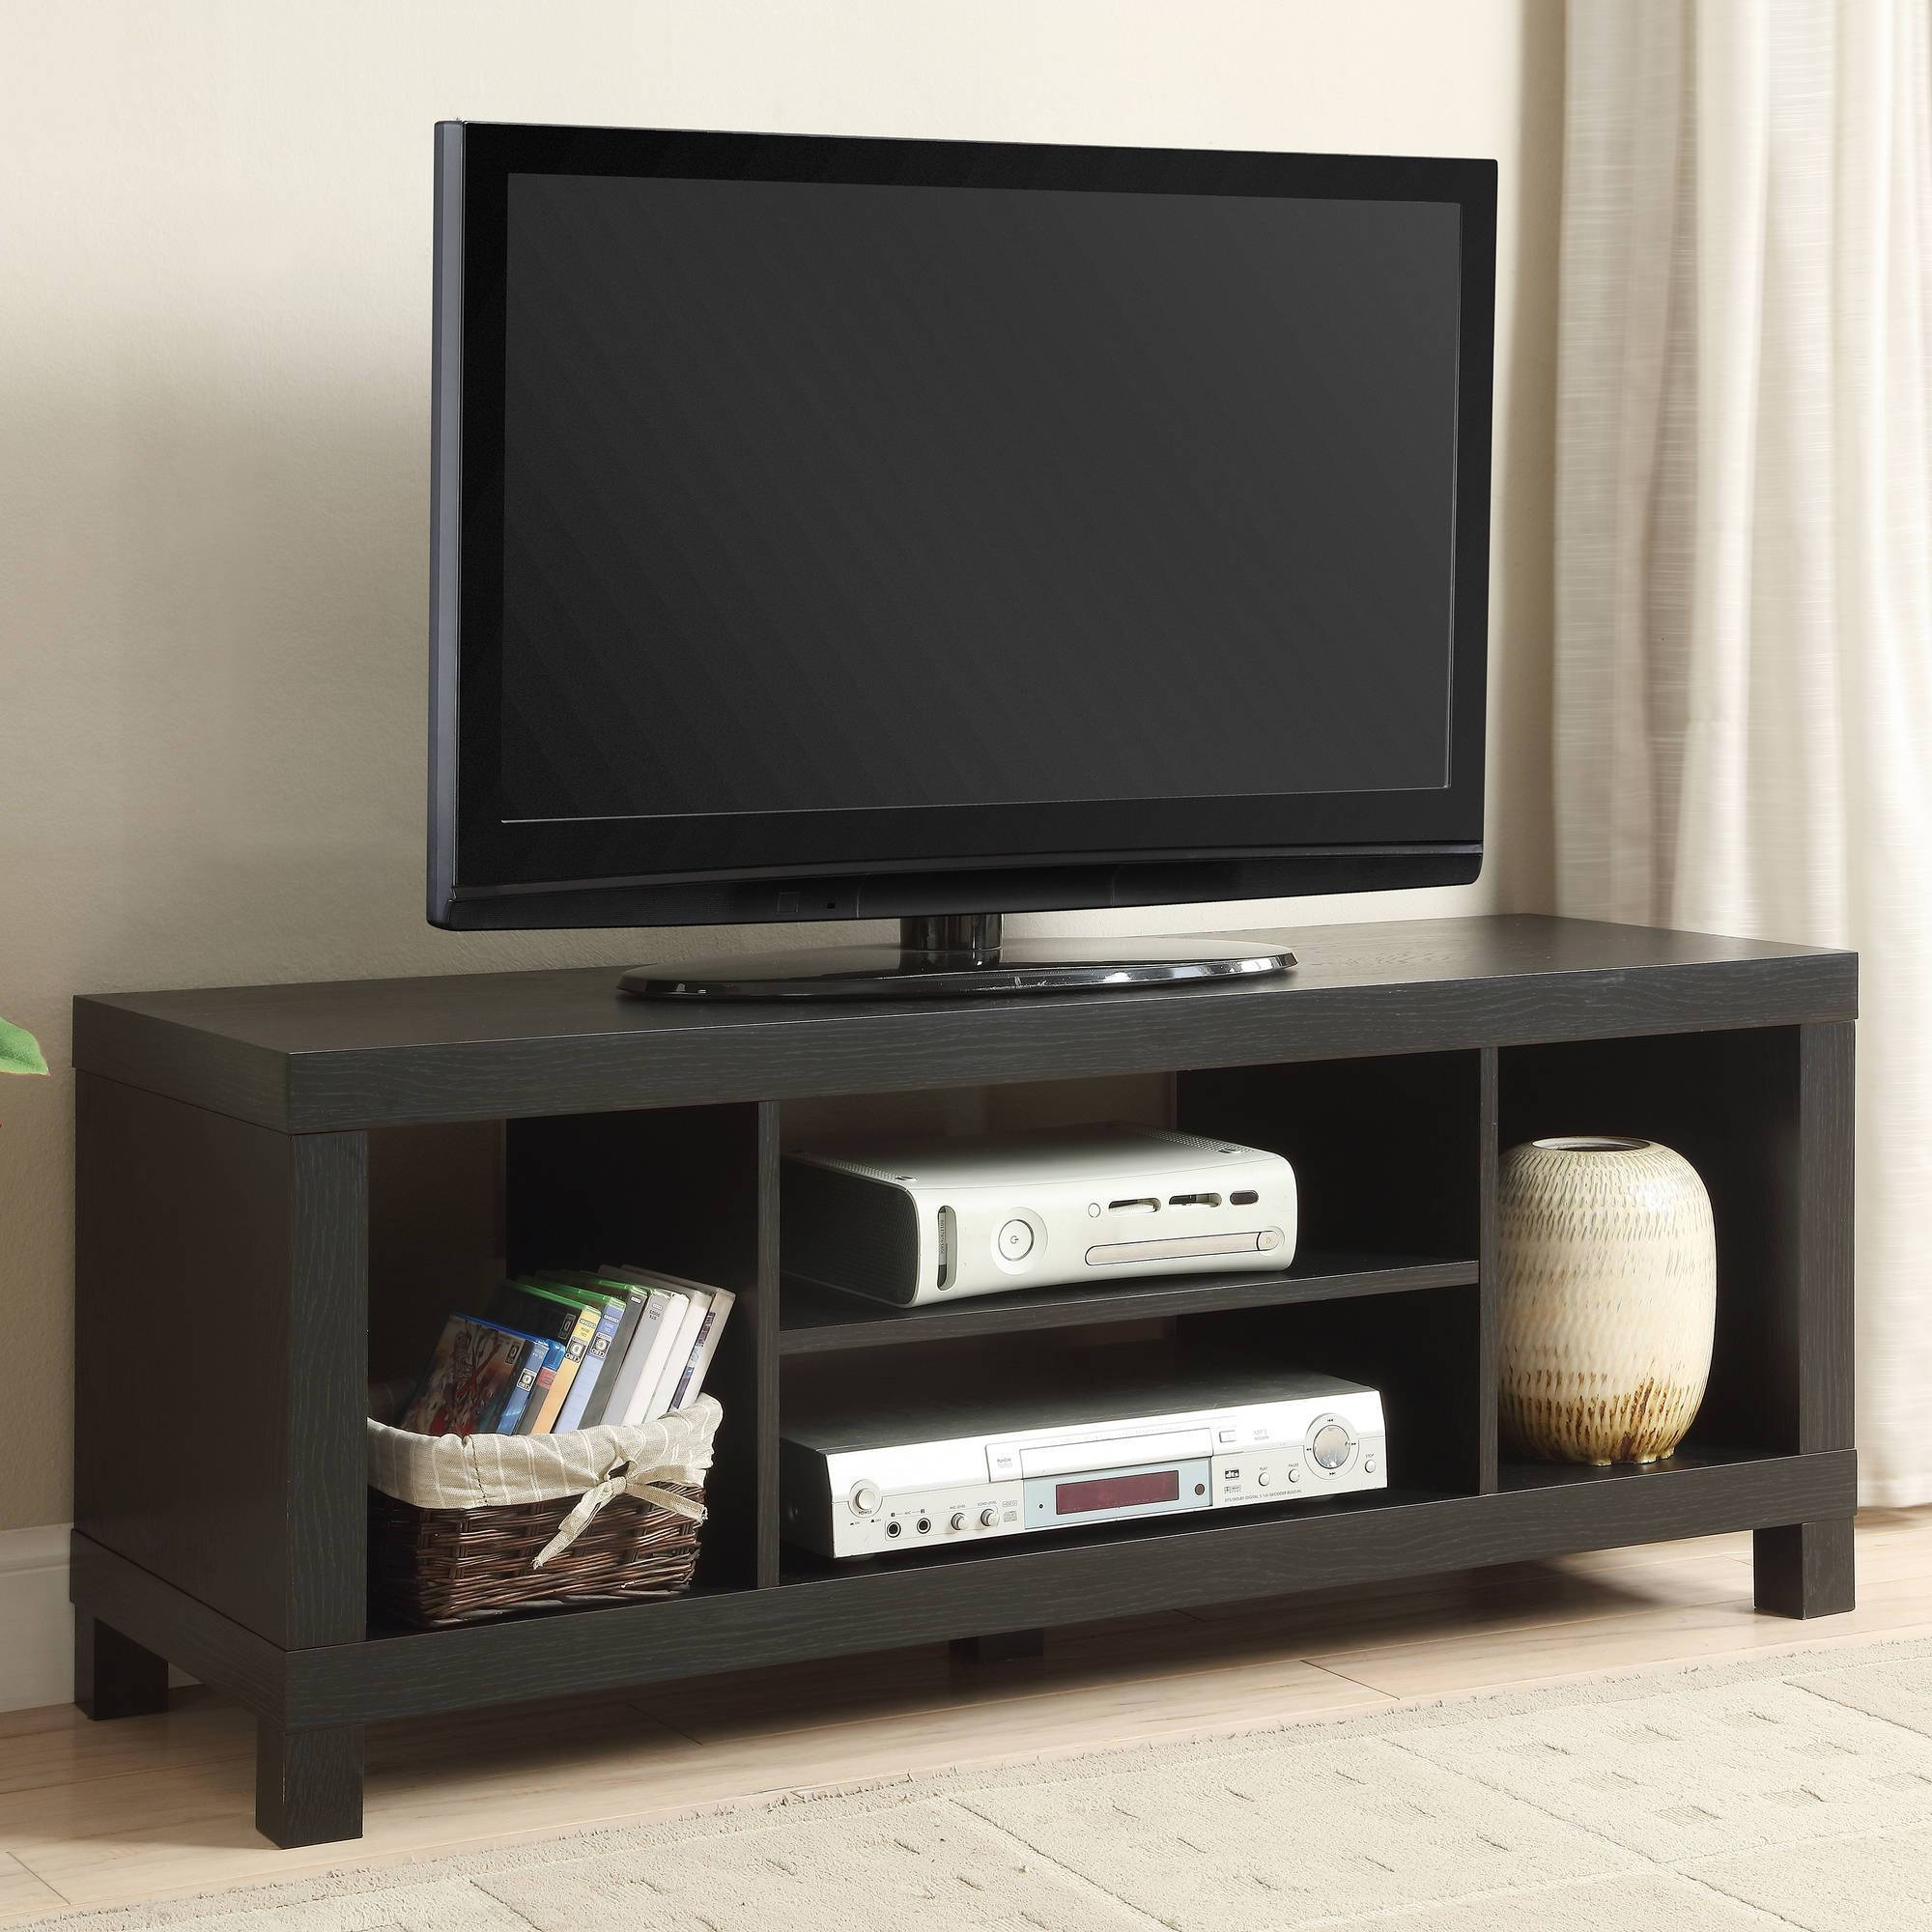 Tv Stands & Entertainment Centers – Walmart Intended For Wooden Tv Stands For 55 Inch Flat Screen (View 13 of 15)